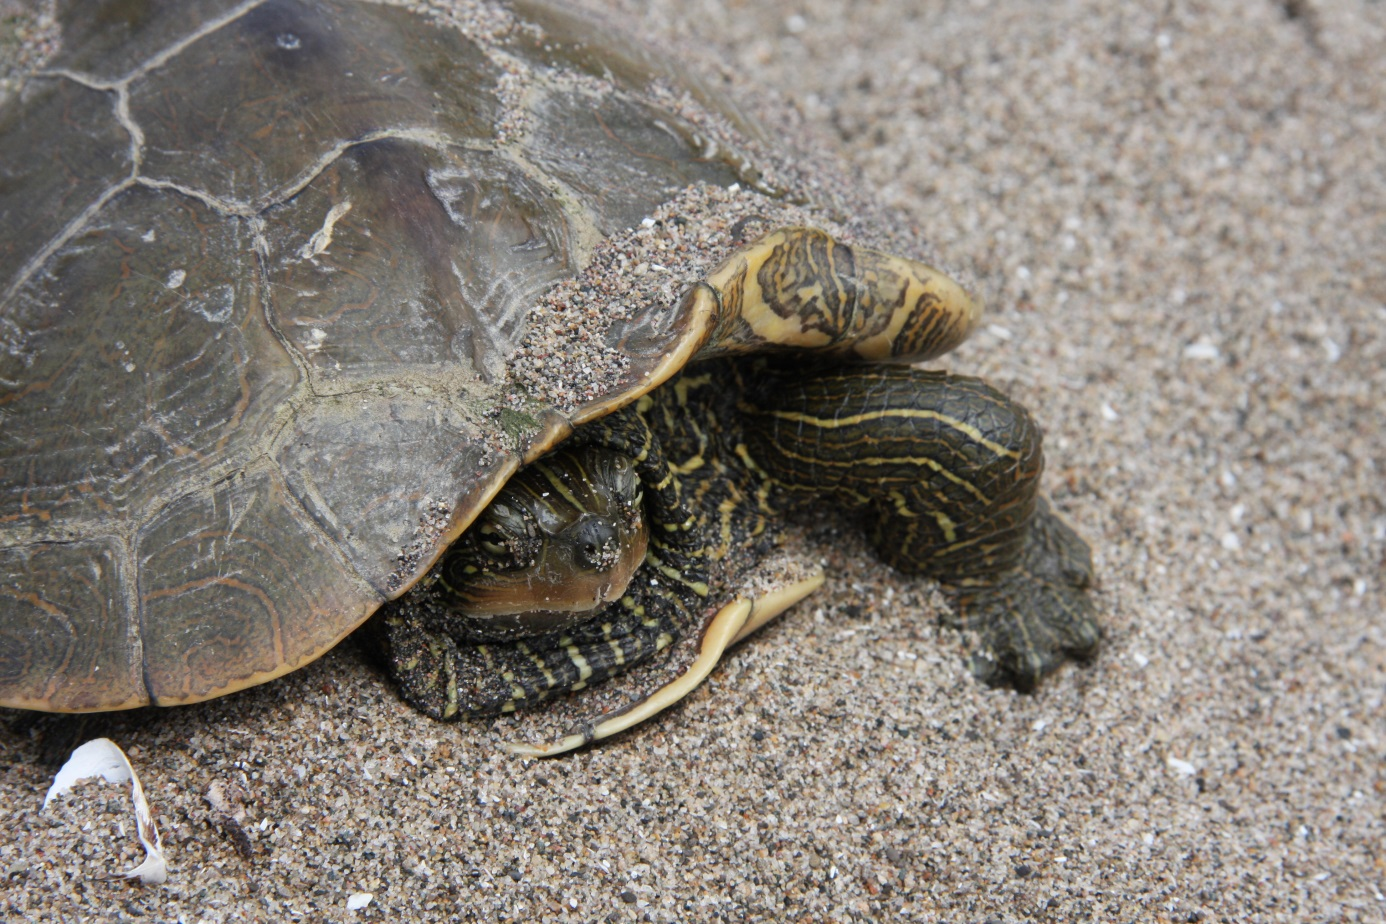 Northern map turtle (Graptemys geographica) on the beach of Lake Pond.